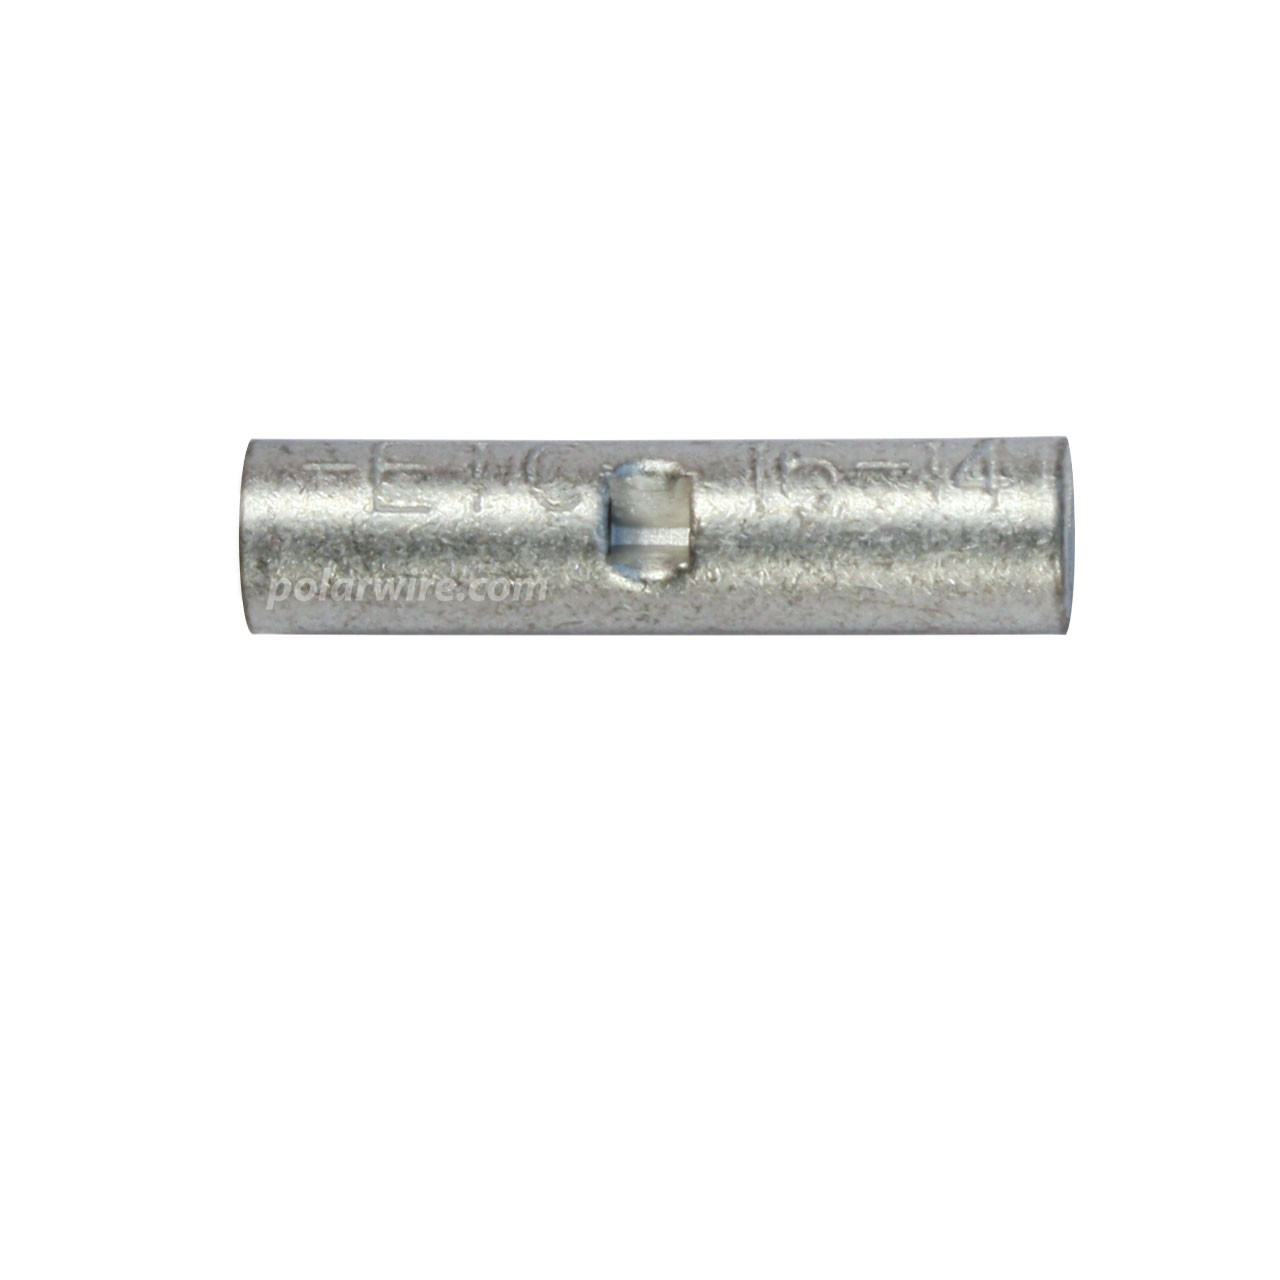 NON-INSULATED BUTT 16-14 GAUGE